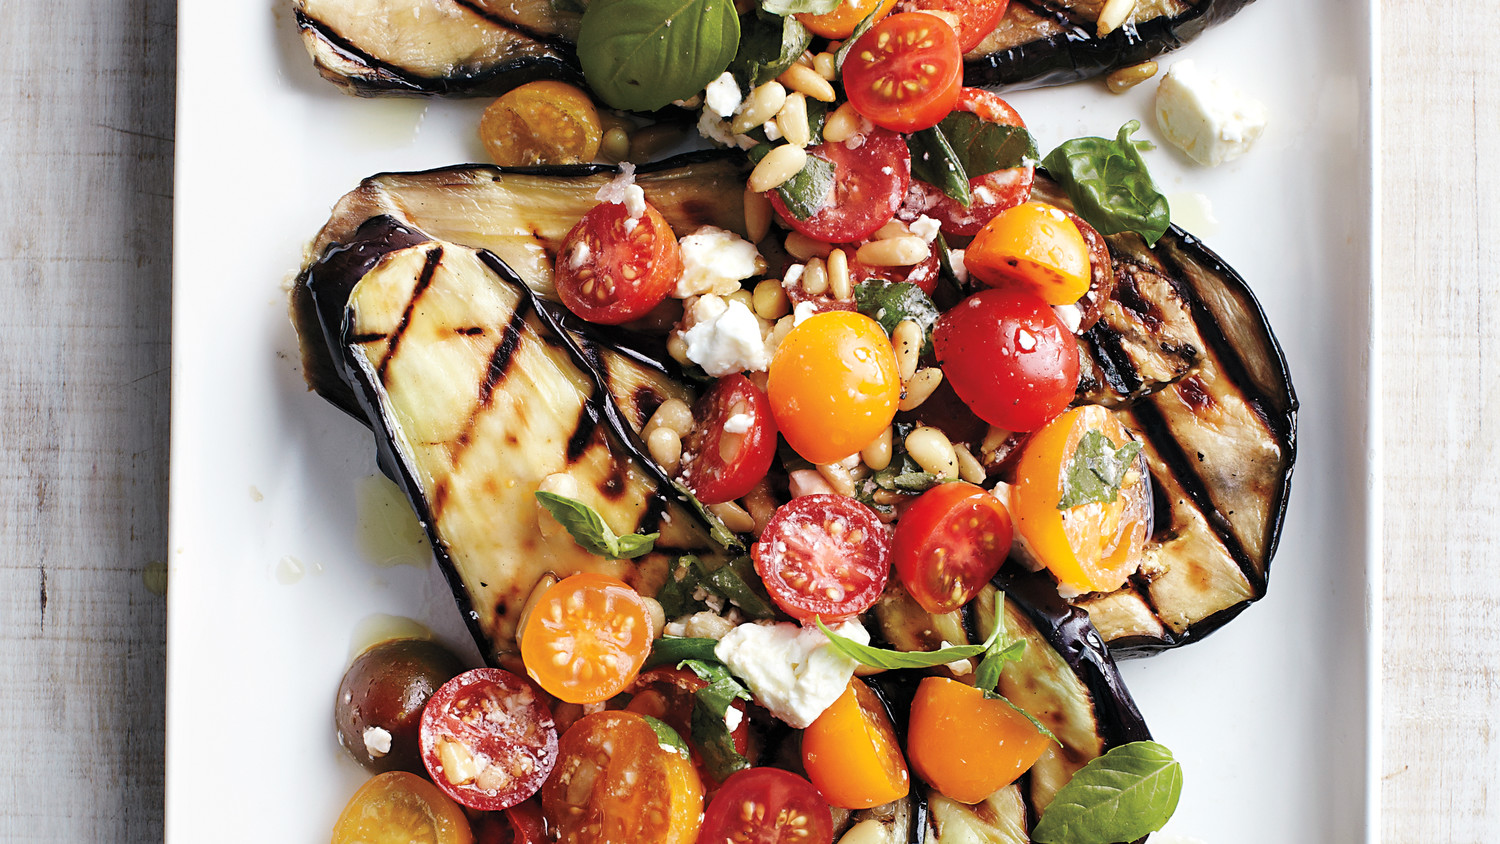 Grilled Eggplant With Tomatoes Basil And Feta